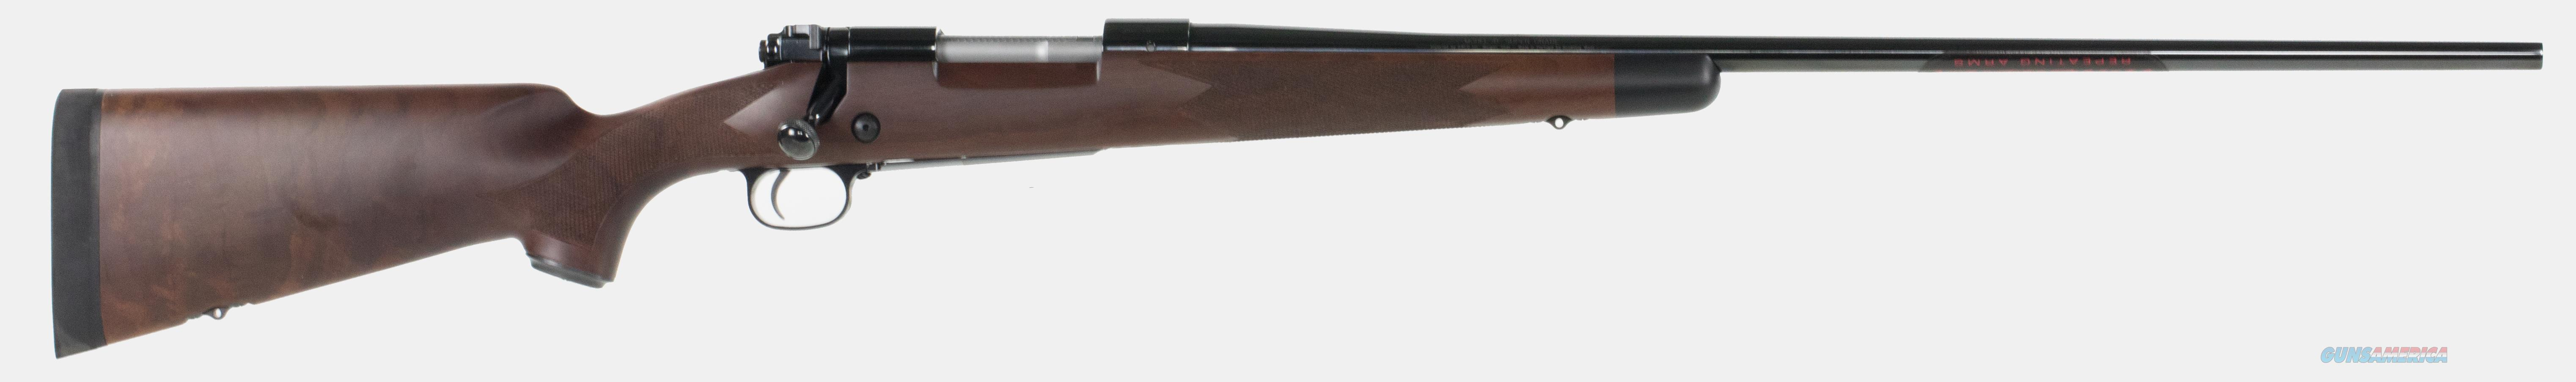 WINCHESTER 70 338WIN 26 SUPER GRADE 535203236  Guns > Rifles > Winchester Rifles - Modern Bolt/Auto/Single > Model 70 > Post-64